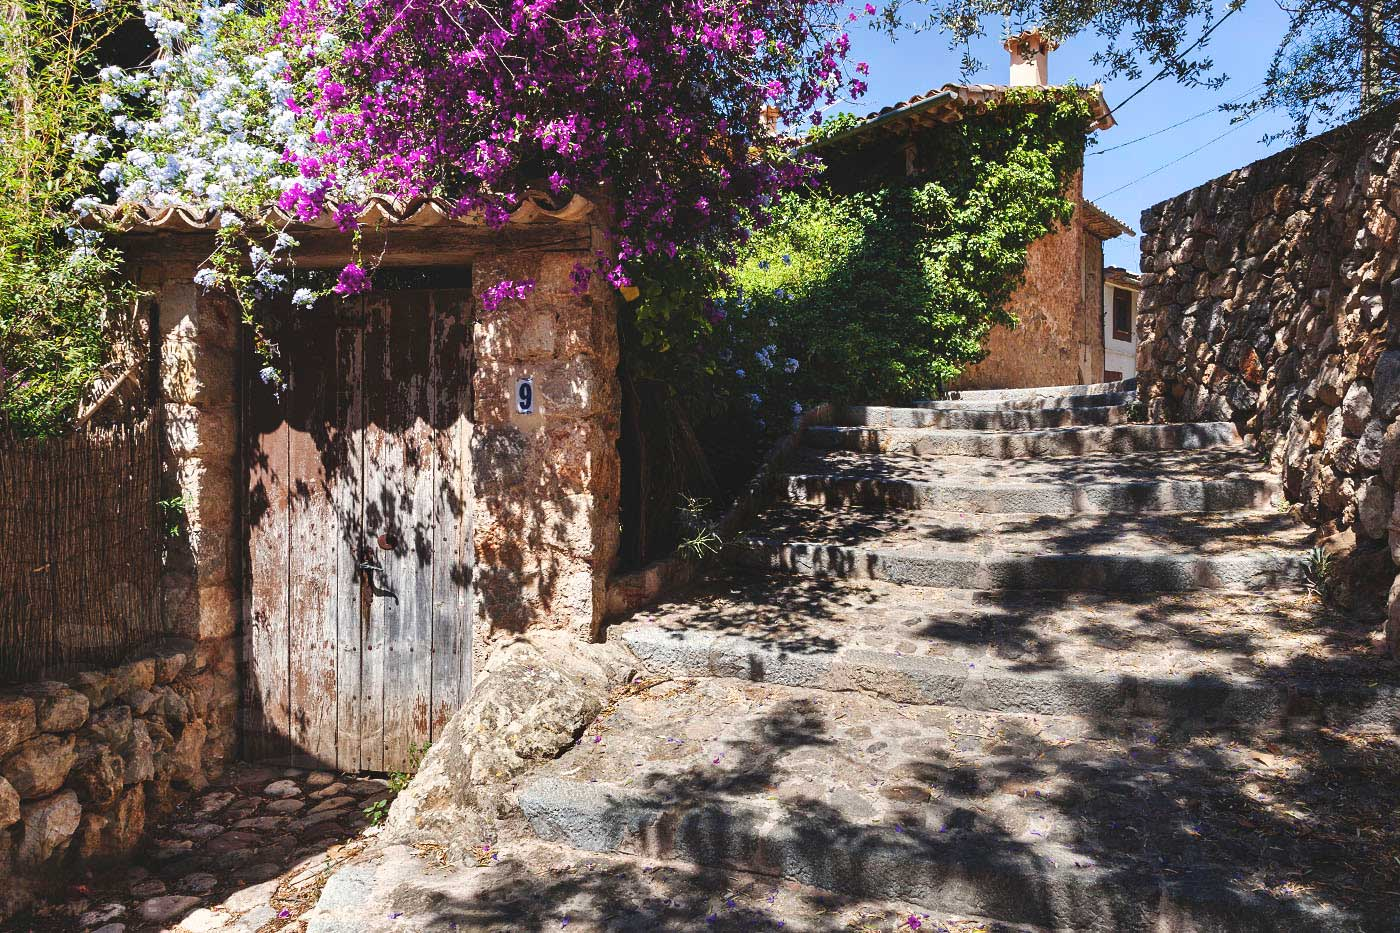 Image of Deià authentic old stone streets